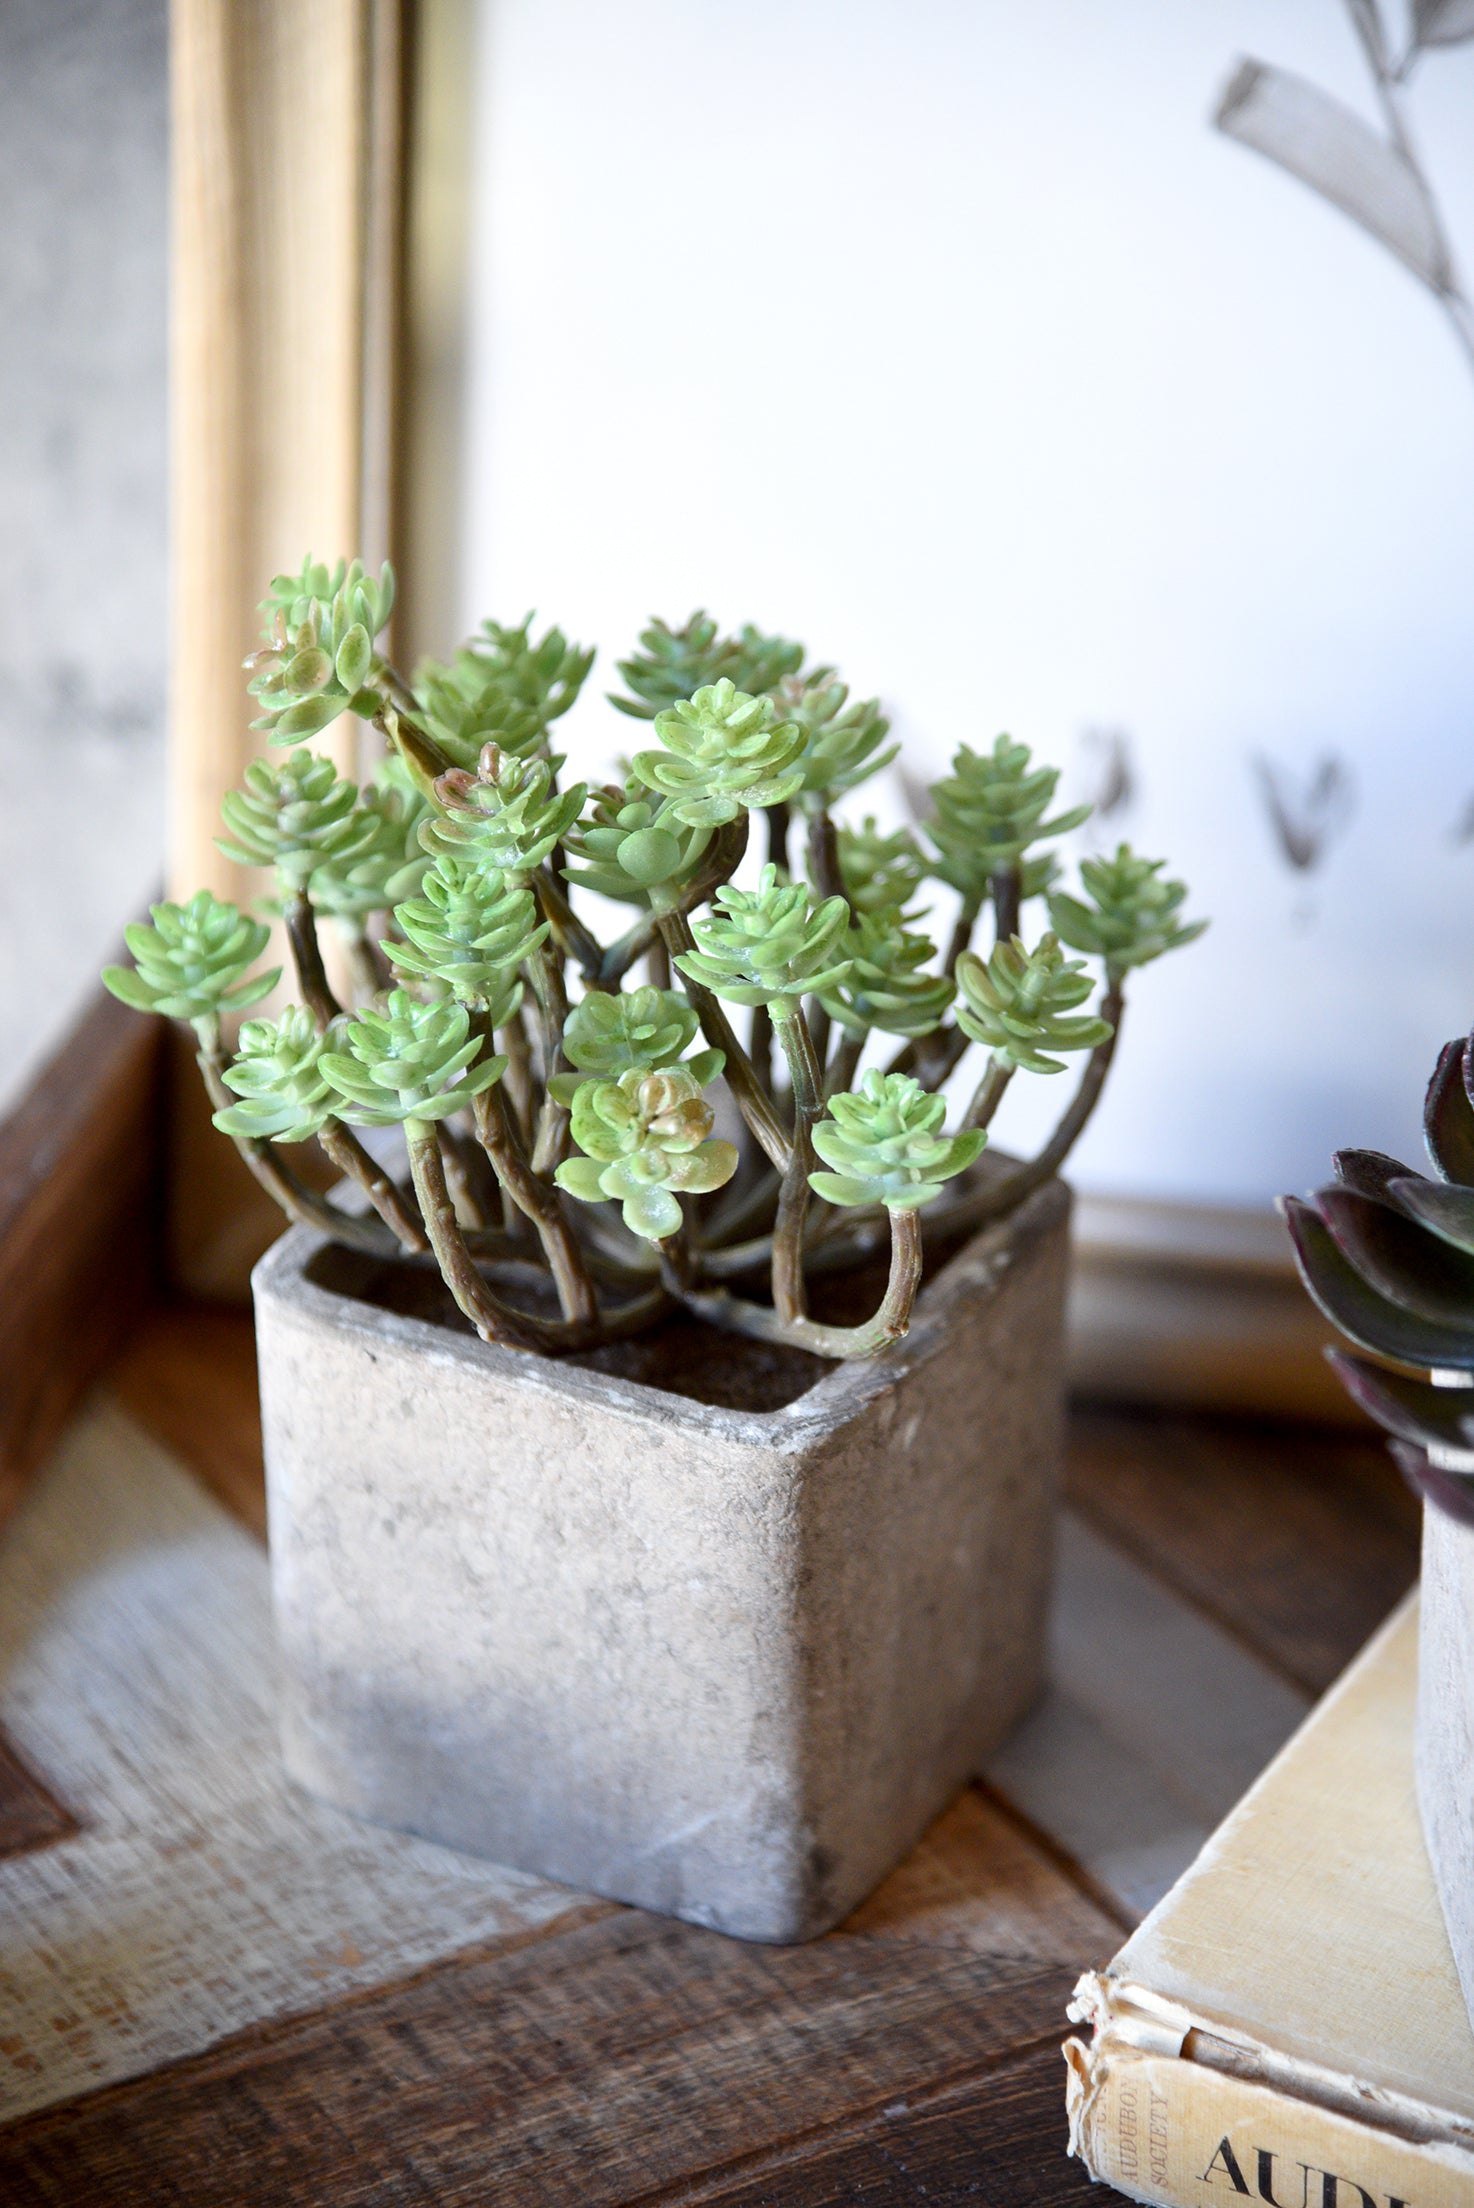 Modern Artificial Succulent Plants in Pots - Set of 3